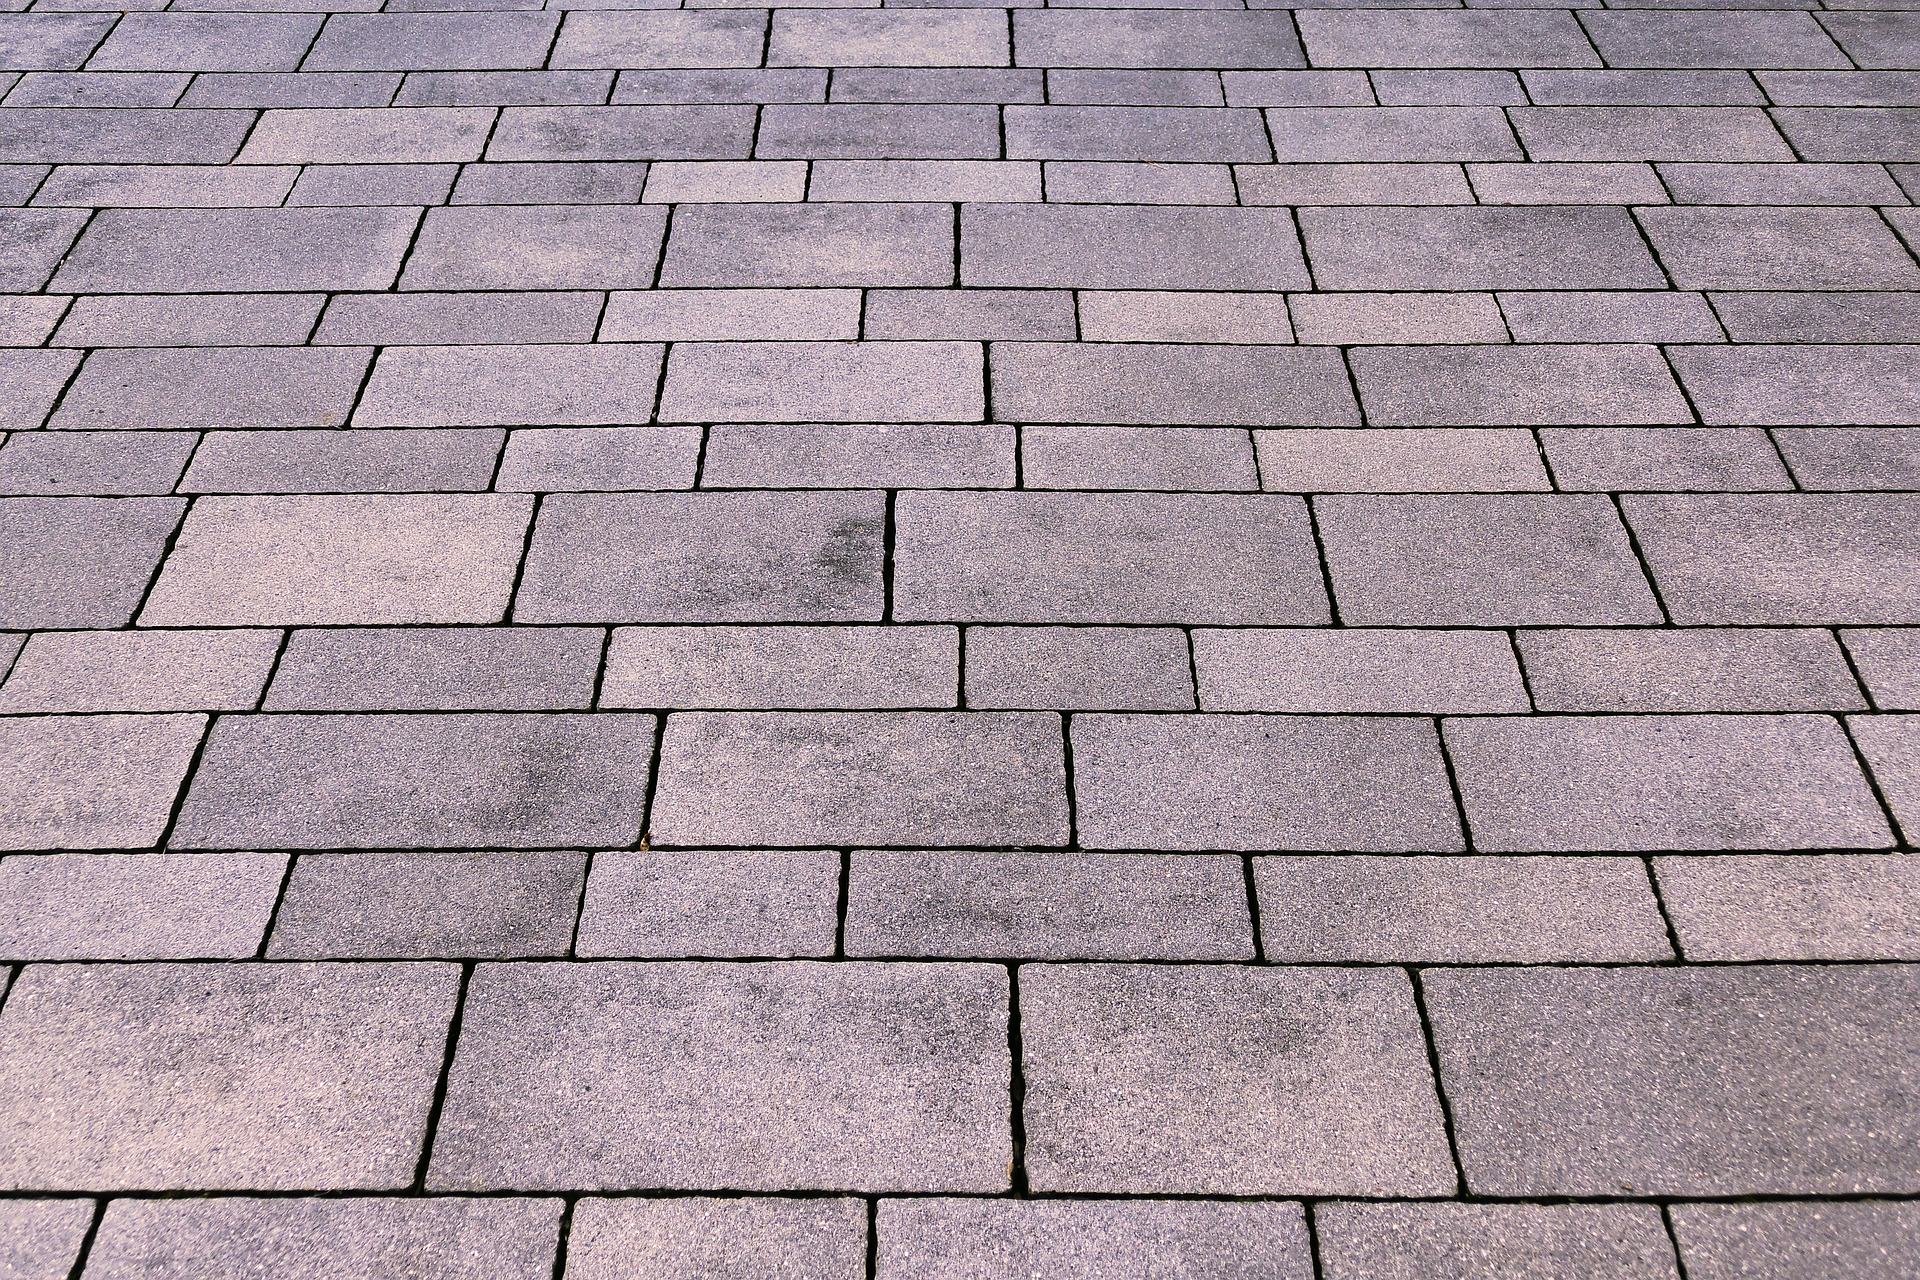 """A lot of people prefer utilizing paver stones to cover an outdoor area with a natural looking yet tough surface. The stones cover pathways, driveways, and porch areas. Furthermore, their little size makes them perfect for making curved edges and narrow borders. Most individuals hire someone to estimate the number of brick pavers that are required. But, the process is quite straightforward and you can do it as well. However, you must know the right size of the area to be covered along with the size of the brick pavers. Check out the below given points to estimate the brick pavers you will need. • Calculate The Total Project Area In Sq Ft: This estimation will help to determine the size of the area you wish to have paved. (length of the area in feet) x (width of the area in feet) = area in sq ft For instance: 5ft x 5ft = 25 sq ft On the off chance that the area where you want brick paves, has an irregular shape, then separate it into numerous segments. Calculate the region of every individual segment and add these together. • Deciding The Brick Paver Size: You may discover paver measurements are commonly listed as an """"estimation"""". In order to determine the true size of the pavers, it is best to take your own measurements. Then to determine how many you will need, you will need to calculate the square footage of an individual paver. However, many pavers are marked in inches, not feet. *A square foot is equal to 144 square inches. (Length of brick paver in inches) x (Width of brick paver in inches) ÷ 144 = square footage per piece. For example: (7.7 in x 3.8 in) = 29.26 sq inches 29.26 q inches ÷ 144 square inches = 0.20 sq ft • Estimating How Many Pavers You Need: Now, you'll need to use the above two calculated values in order to decide what number of brick pavers your task requires. Once, you know the estimated number of brick paves you need, you are less likely to need to return to buy more pavers again and again. (area of the project in square feet) ÷ (square foota"""